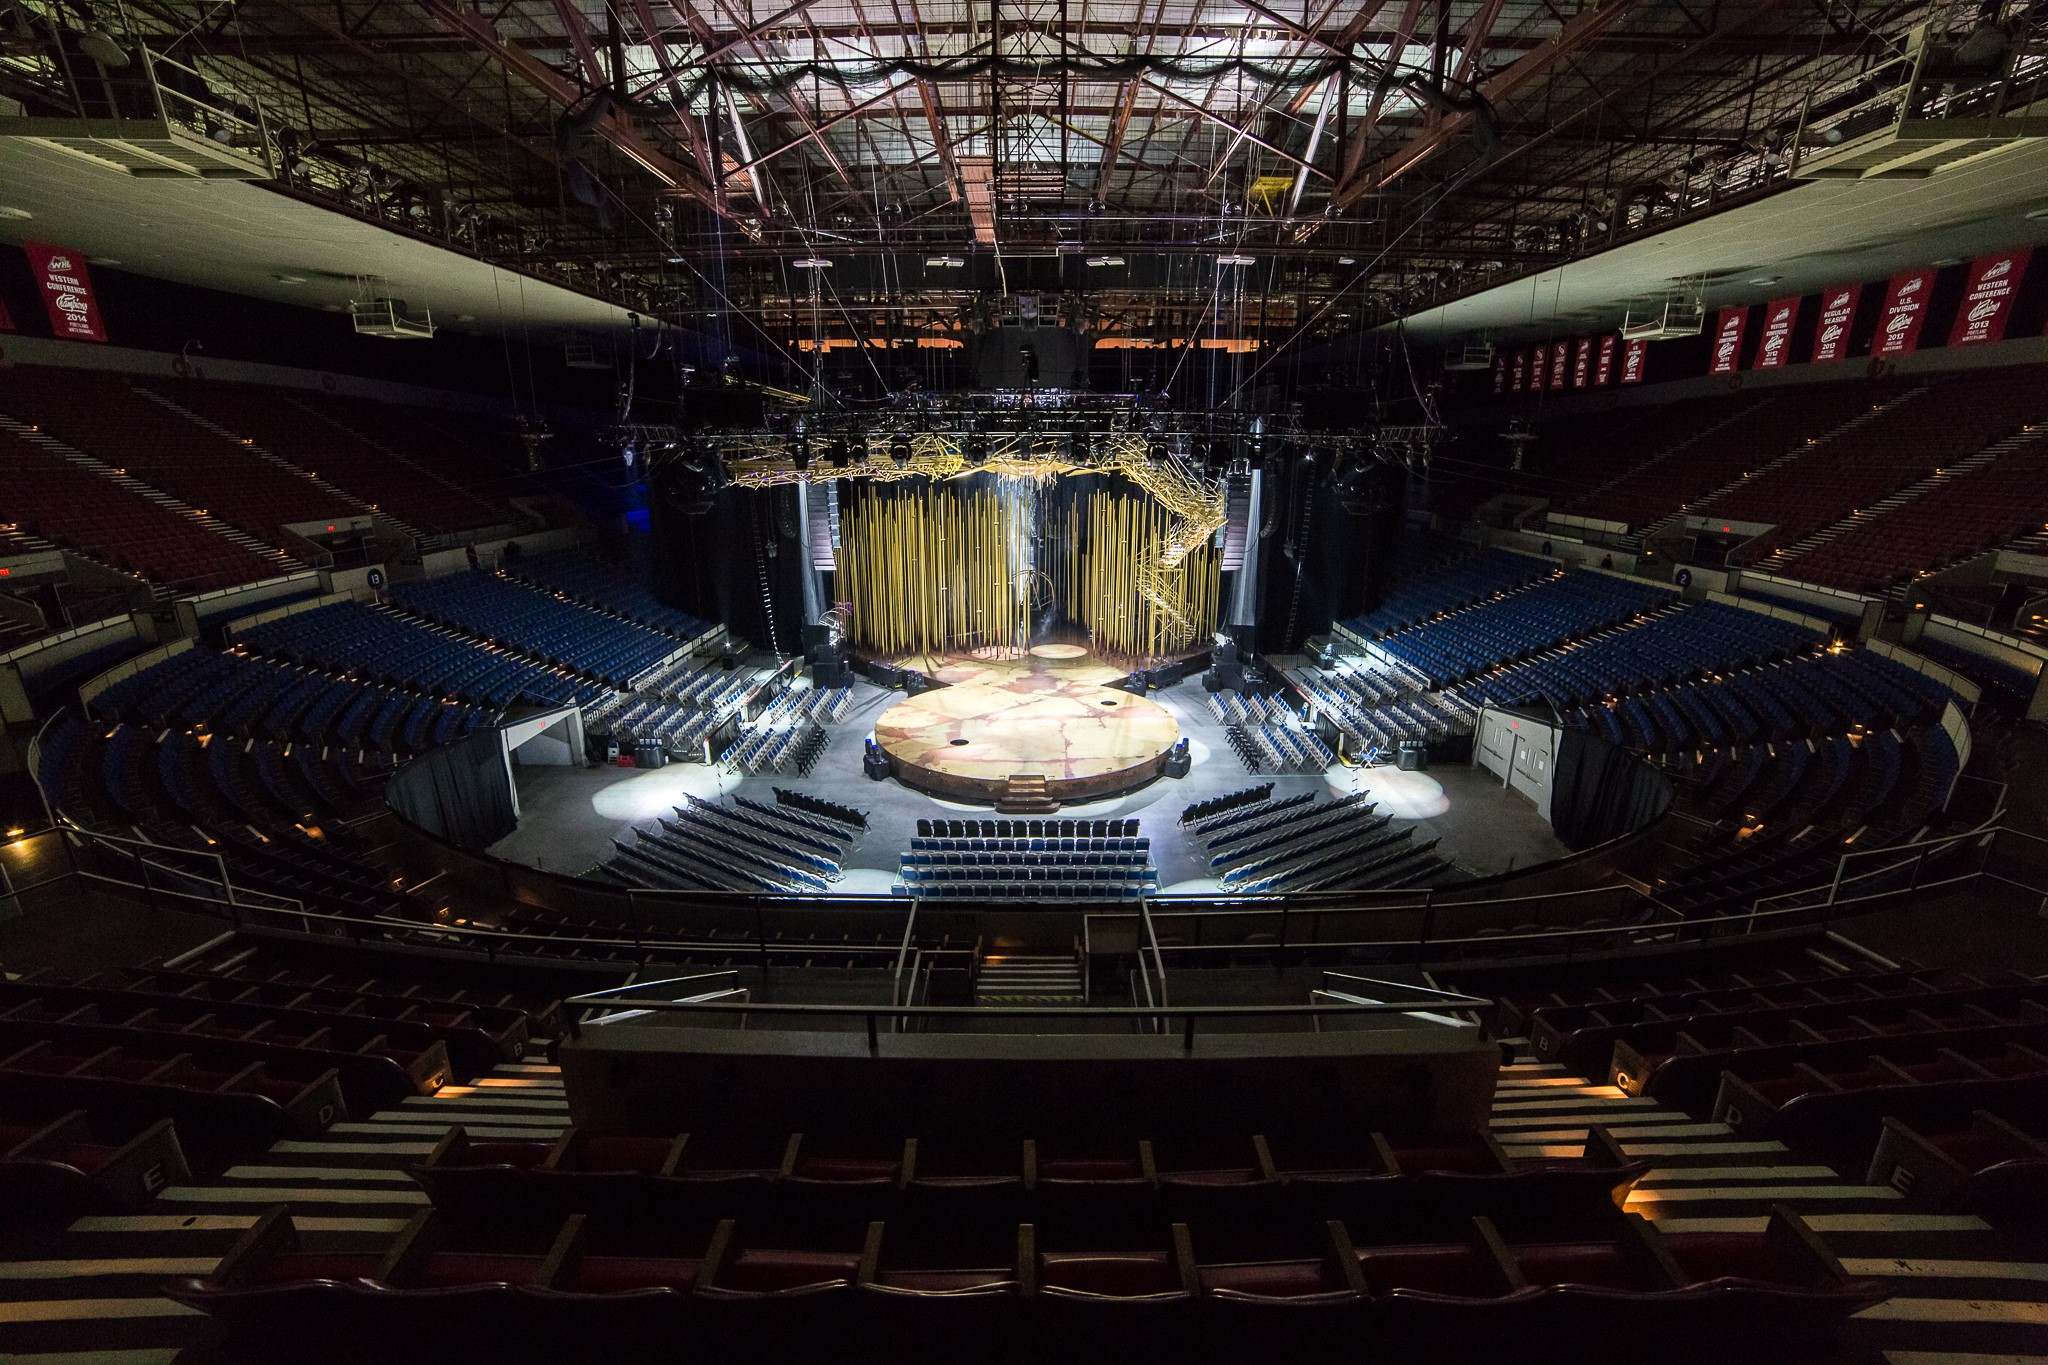 Cirque du Soleil Stage and Rigging in the Veterans Memorial Coliseum.                                                                                    Photo:  Justin Brady